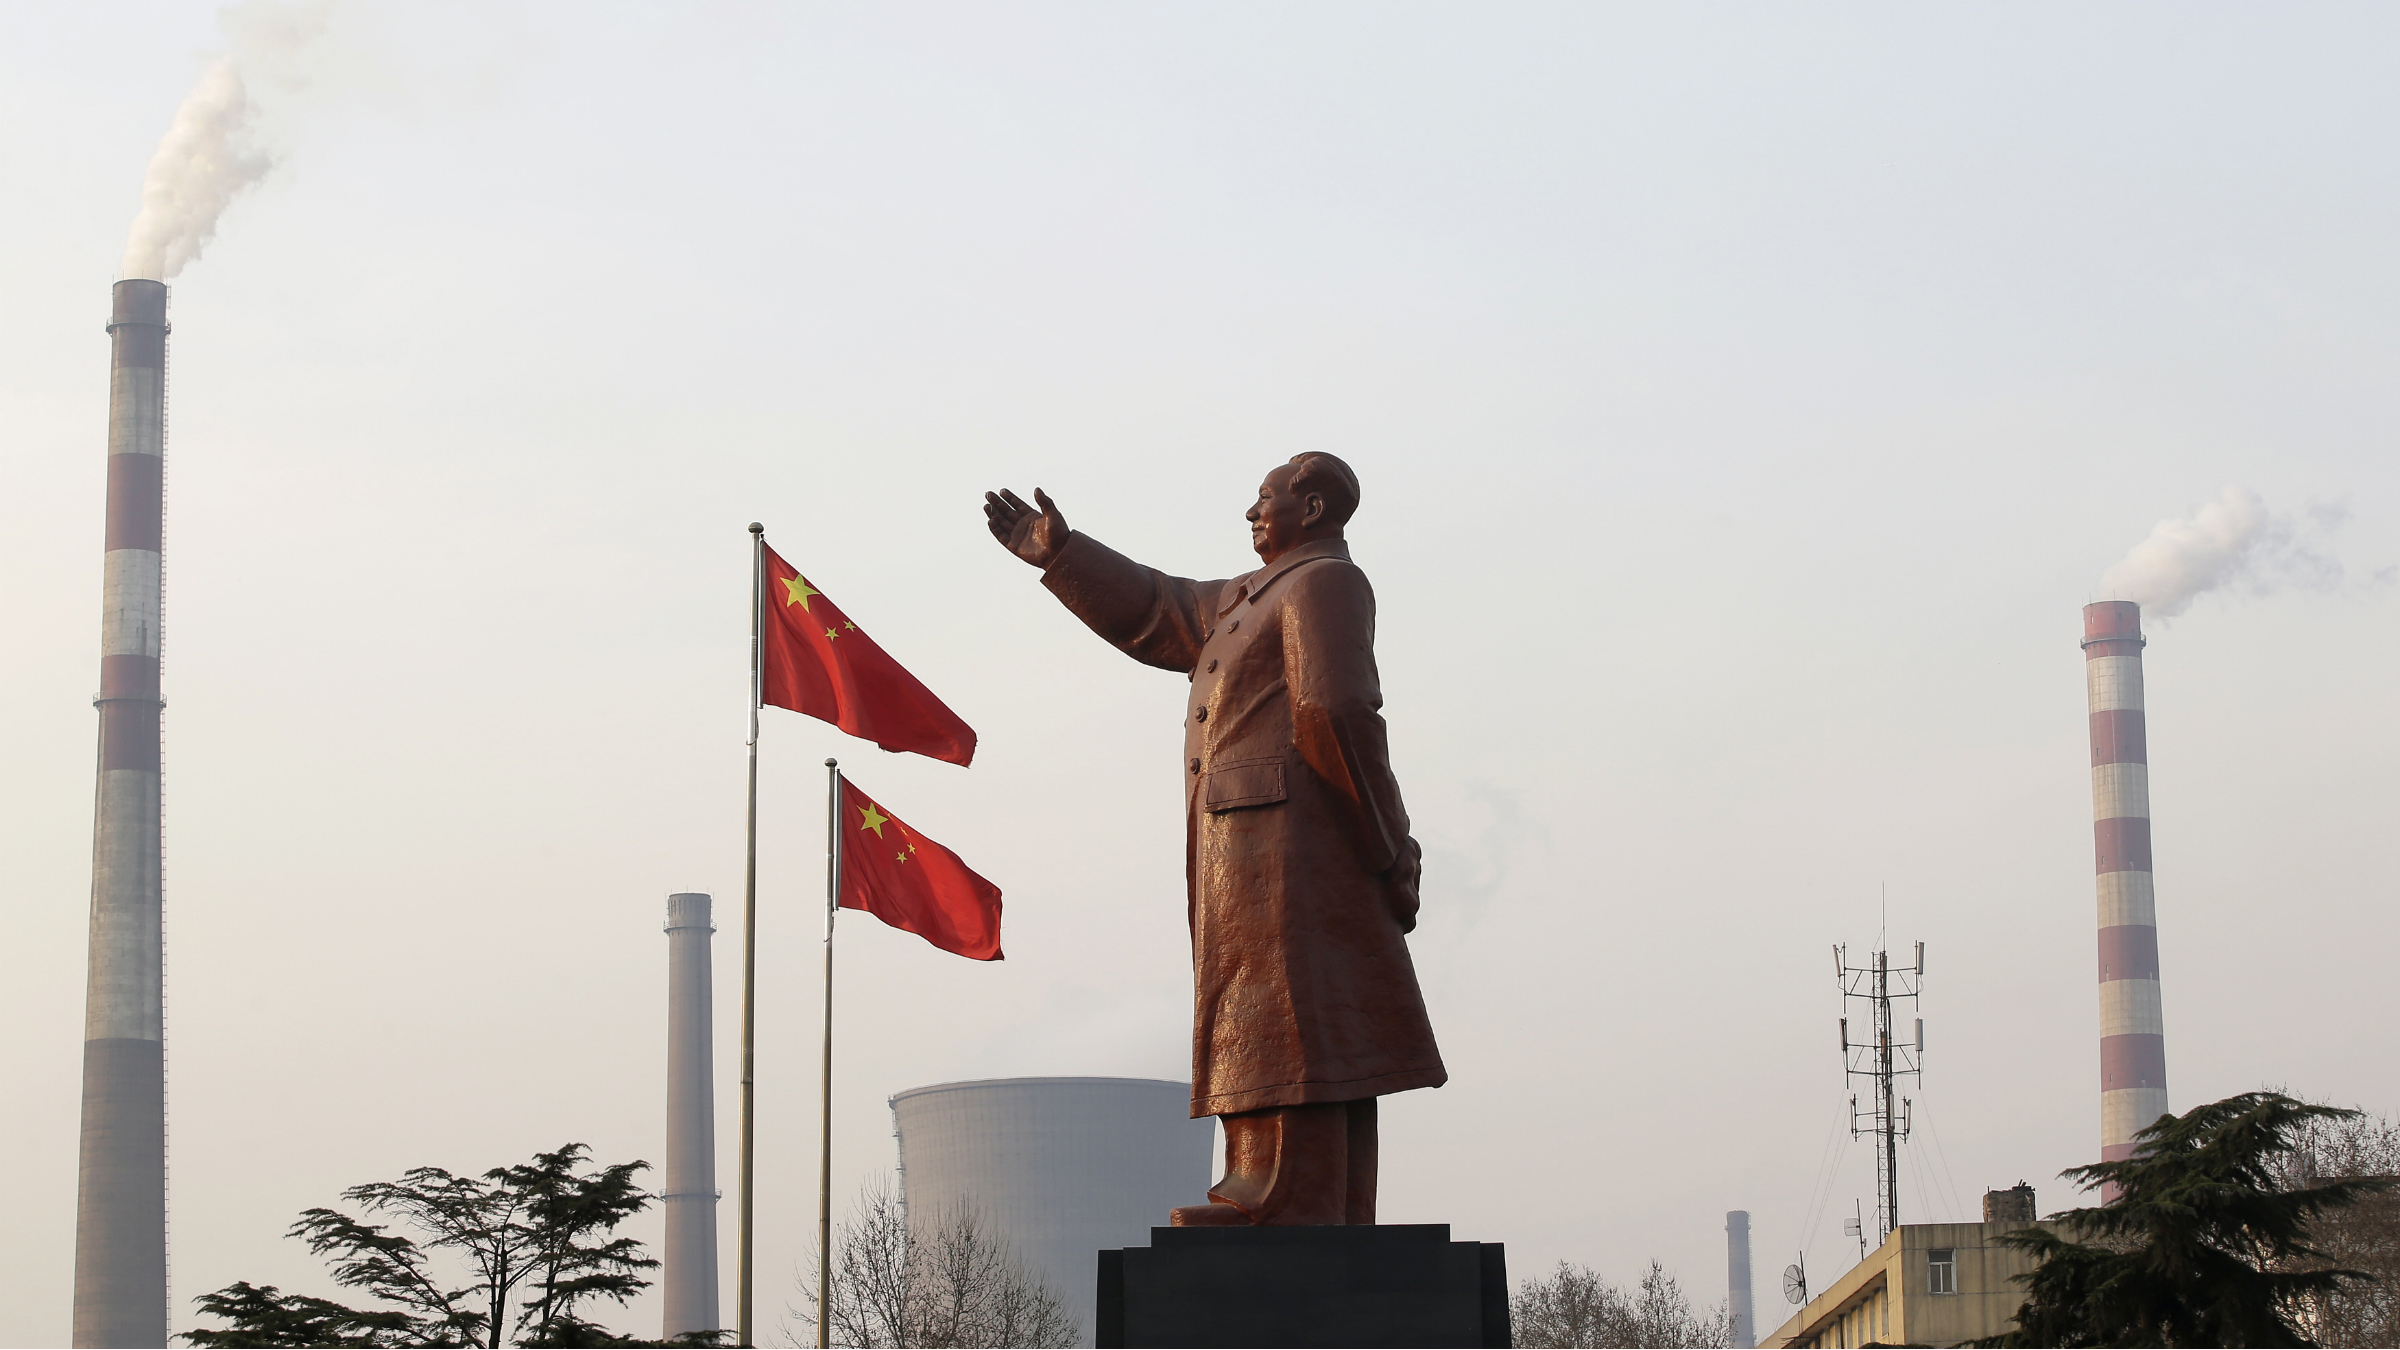 DATE IMPORTED:March 10, 2013A statue of former Chinese leader Mao Zedong is seen in front of smoking chimneys at Wuhan Iron And Steel Corp in Wuhan, Hubei province, March 6, 2013. China will impose new restrictions on its sprawling steel sector as it battles chronic air pollution, but hopes that the curbs could also help tackle sector overcapacity and strengthen the country's struggling state-owned mills are likely to be dashed. Picture taken March 6, 2013. REUTERS/Stringe